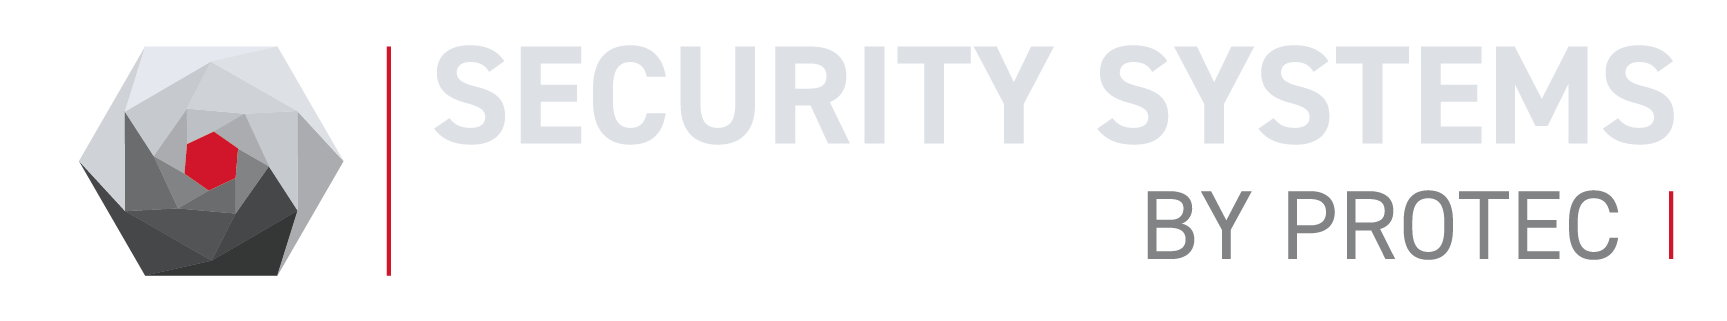 Protec Security Systems Logo